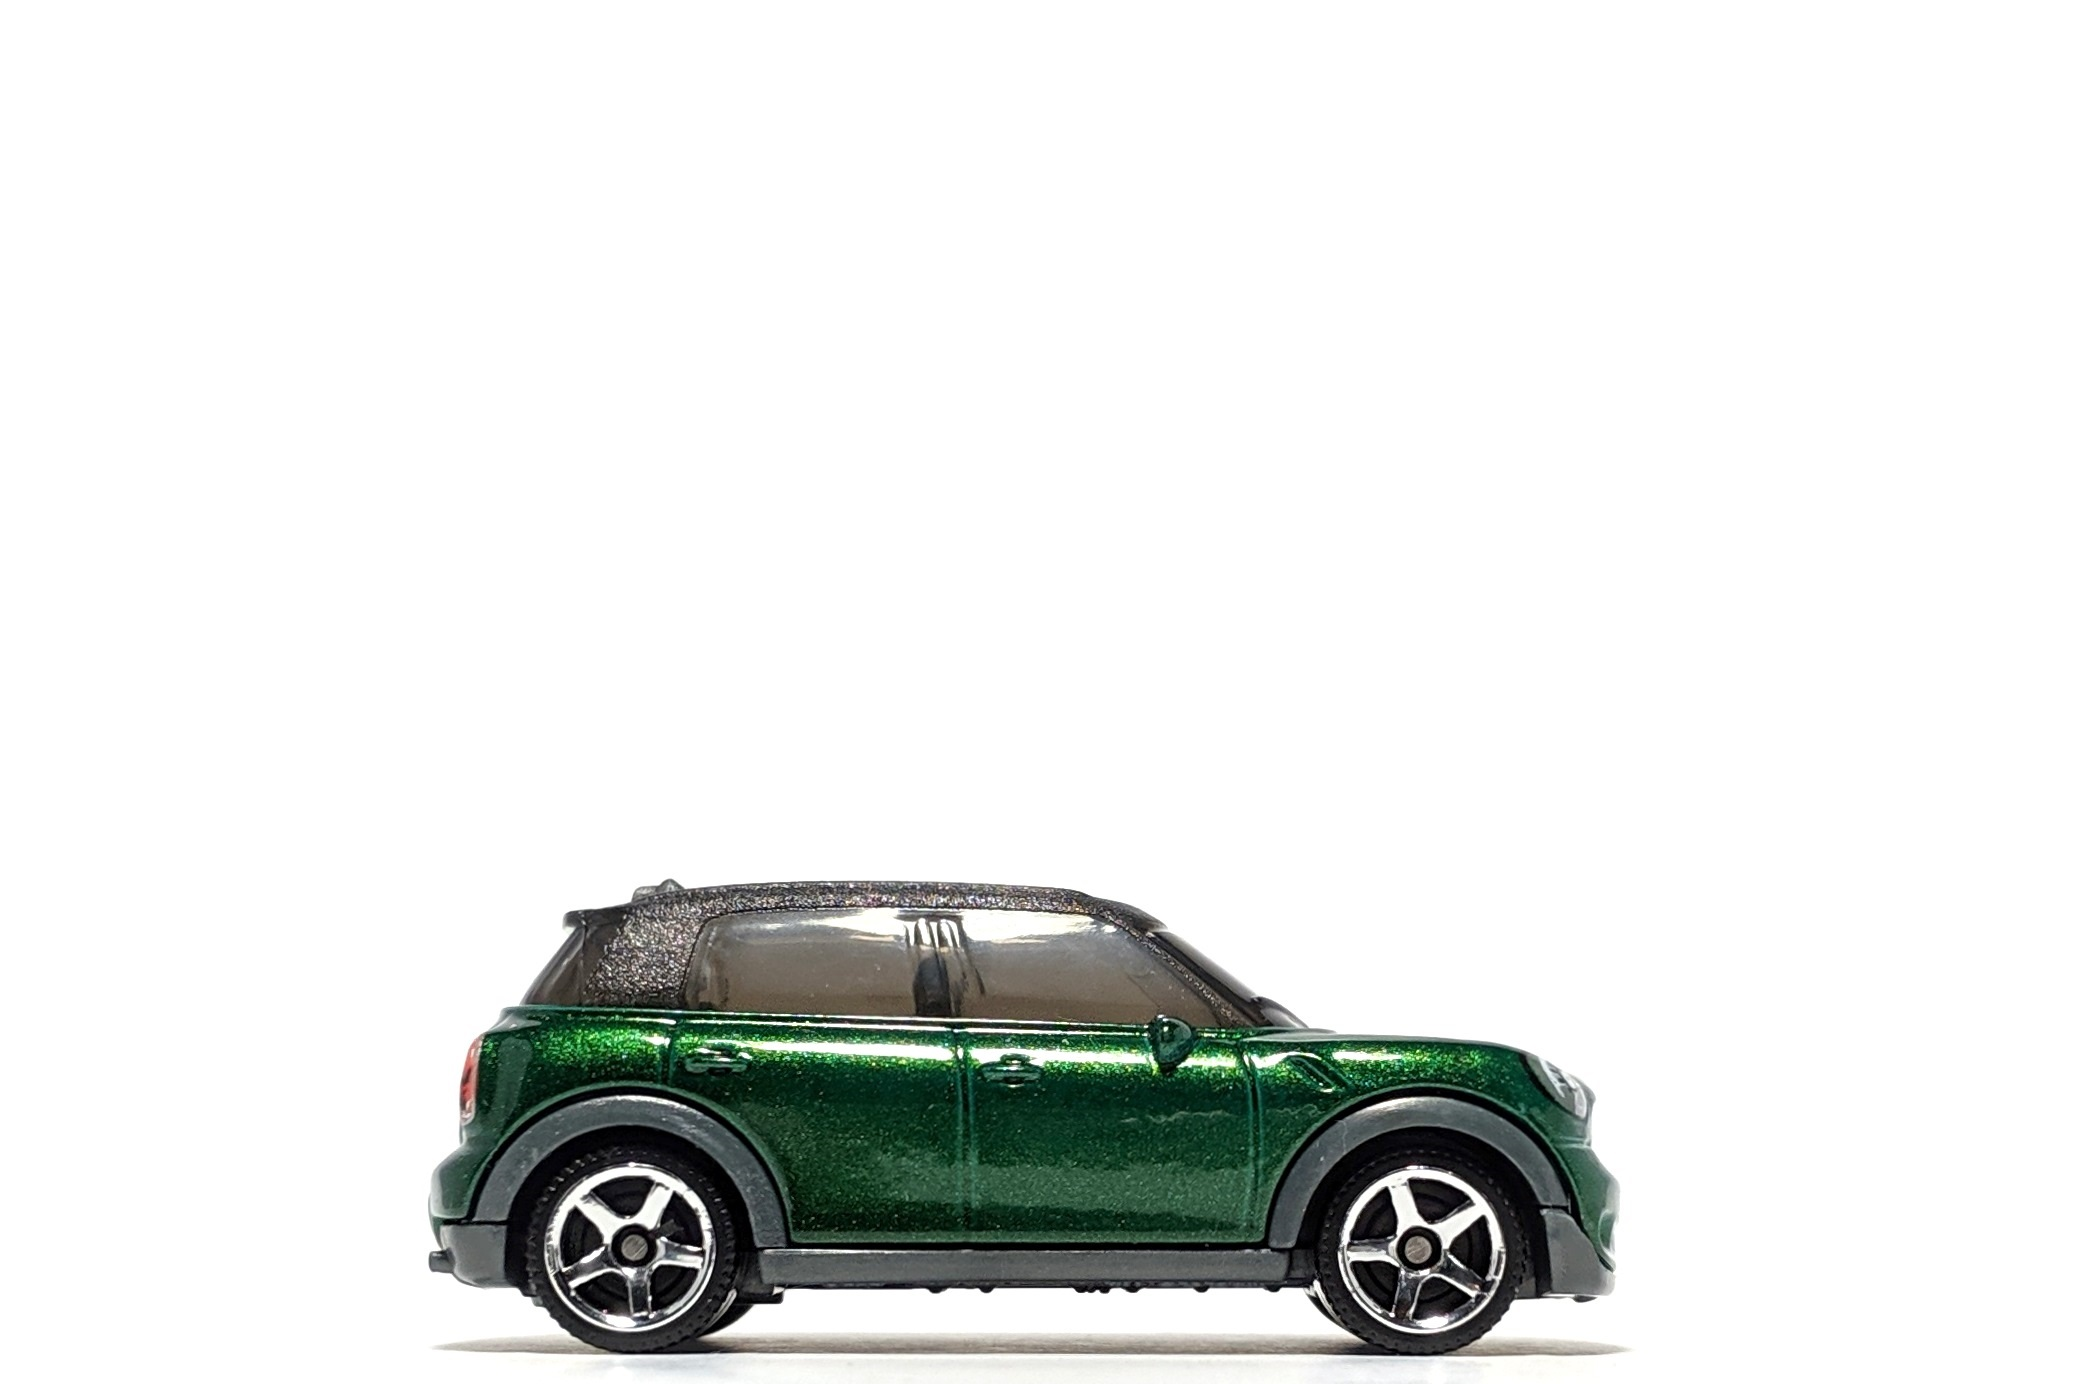 '11 Mini Countryman, by Matchbox